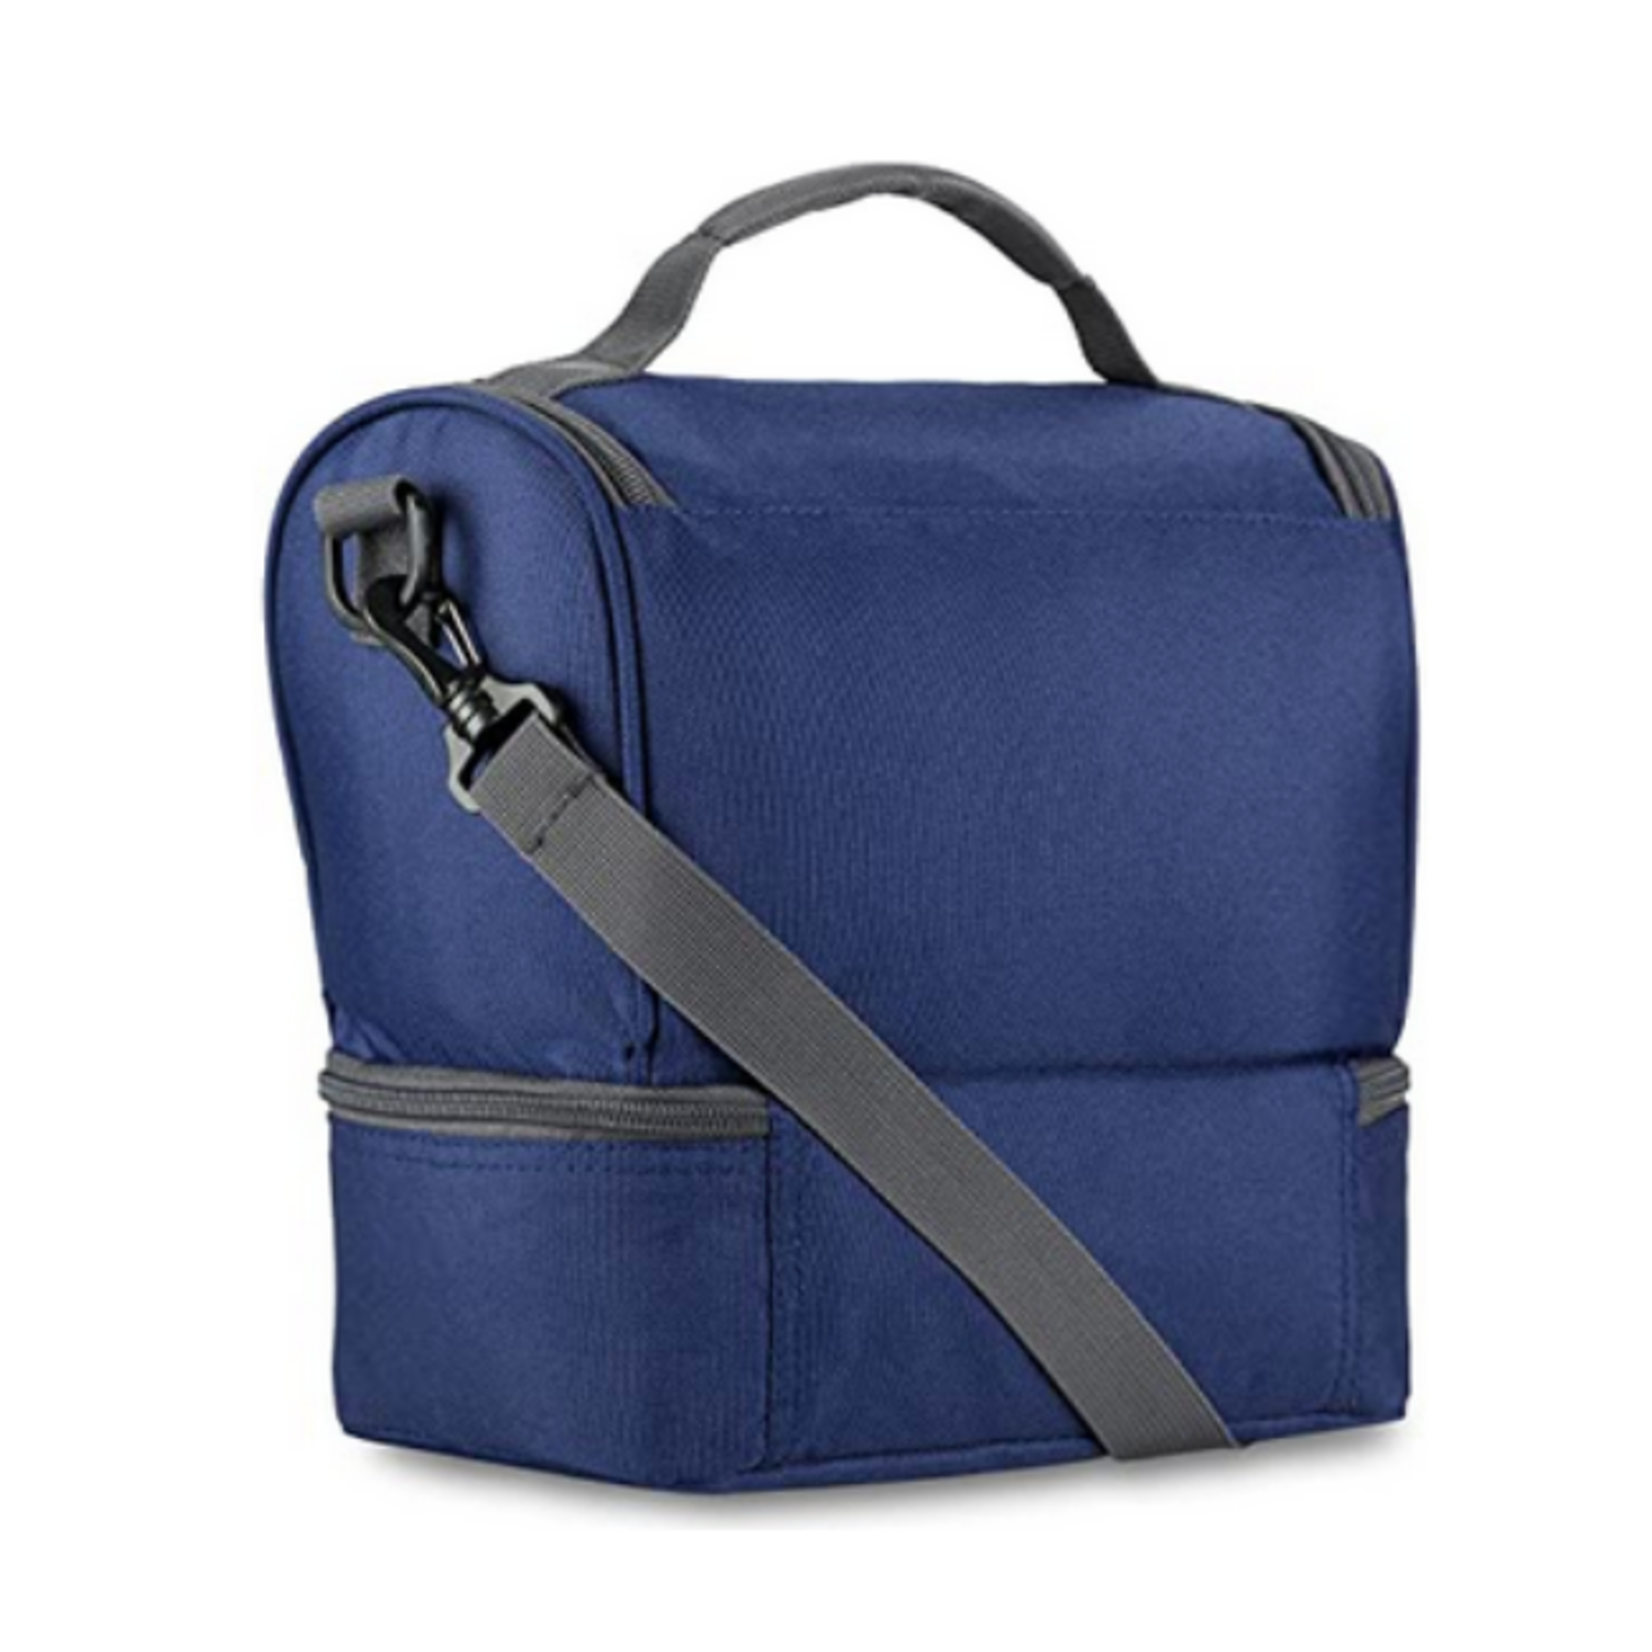 DOUBLE DECKER LUNCH BOX True Navy